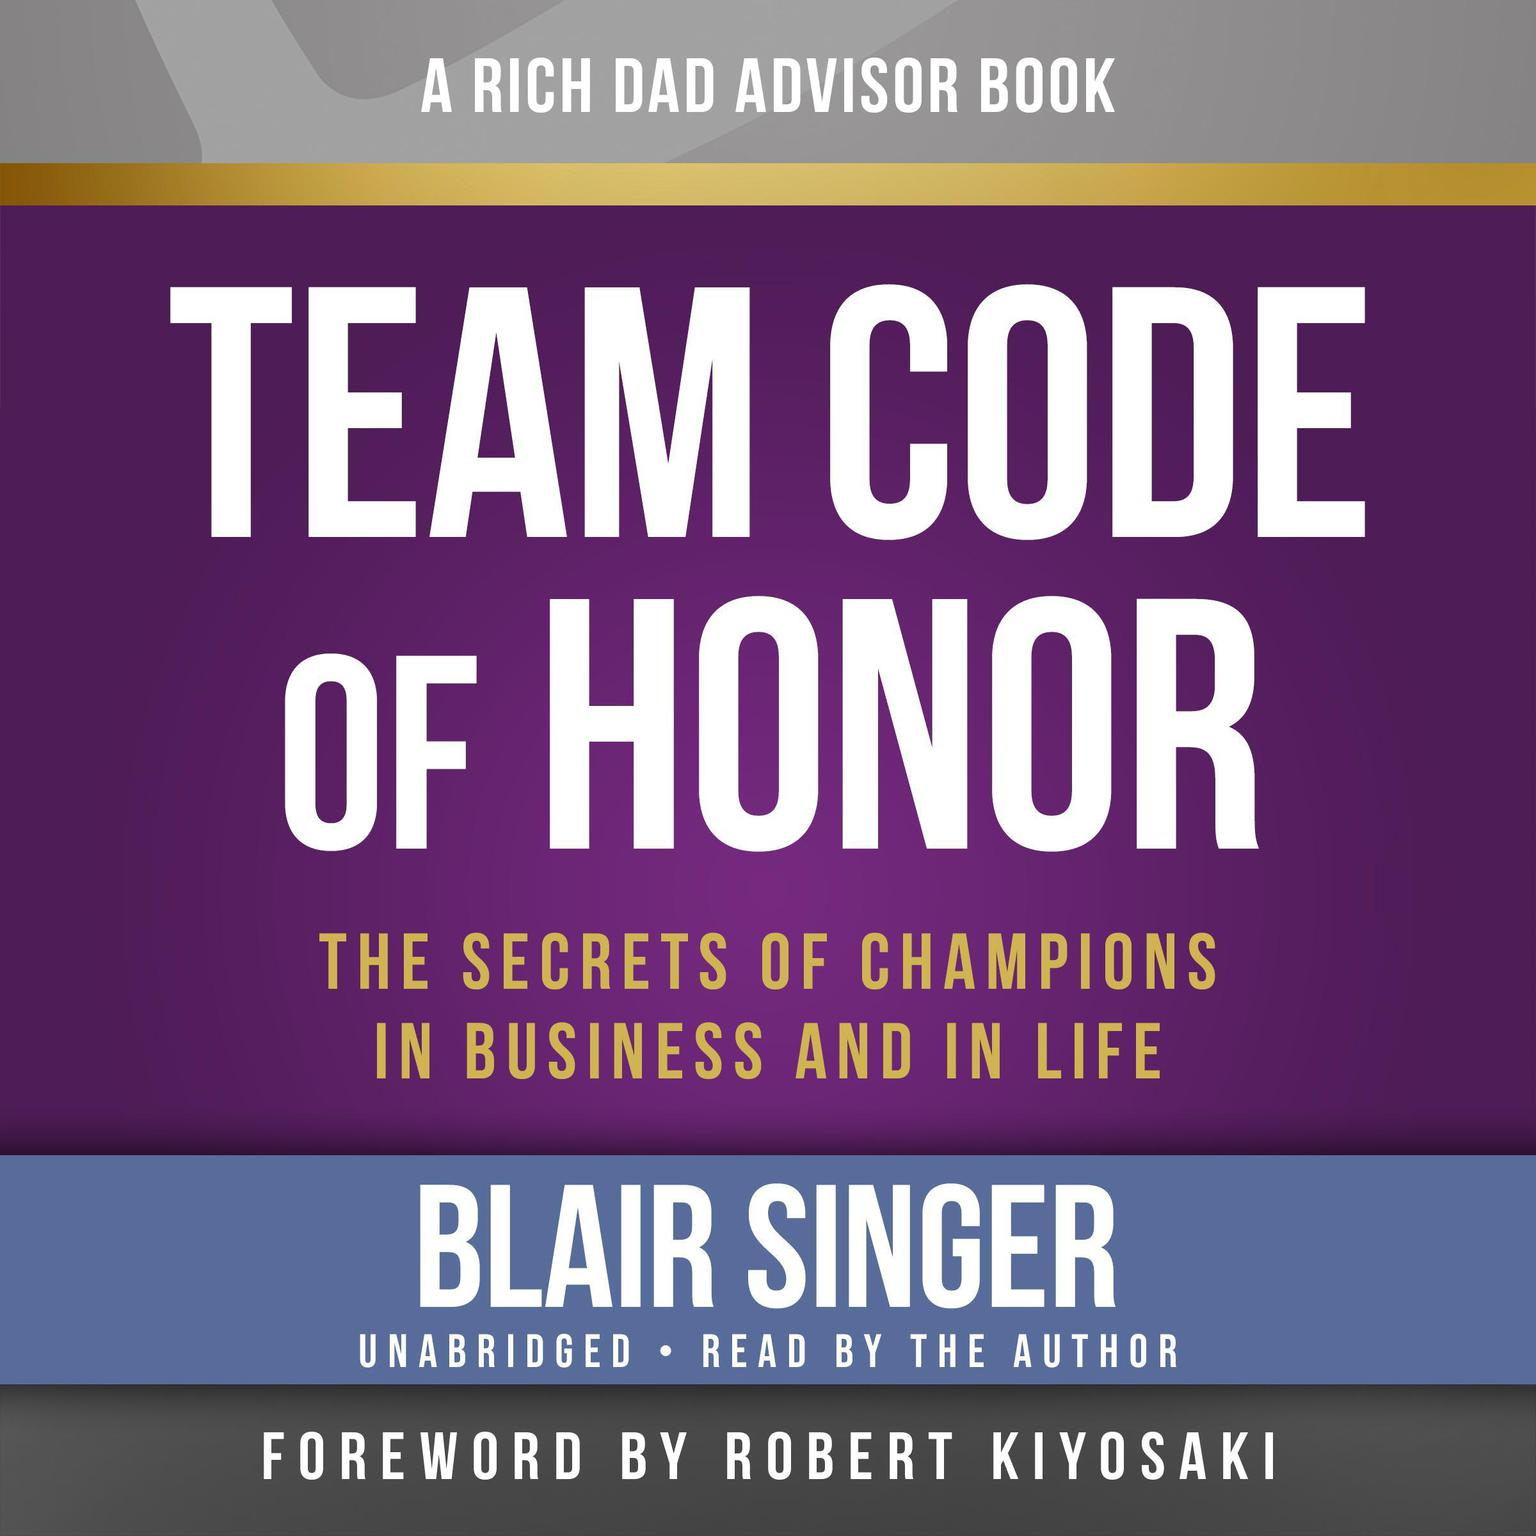 Printable Rich Dad Advisors: Team Code of Honor: The Secrets of Champions in Business and in Life Audiobook Cover Art